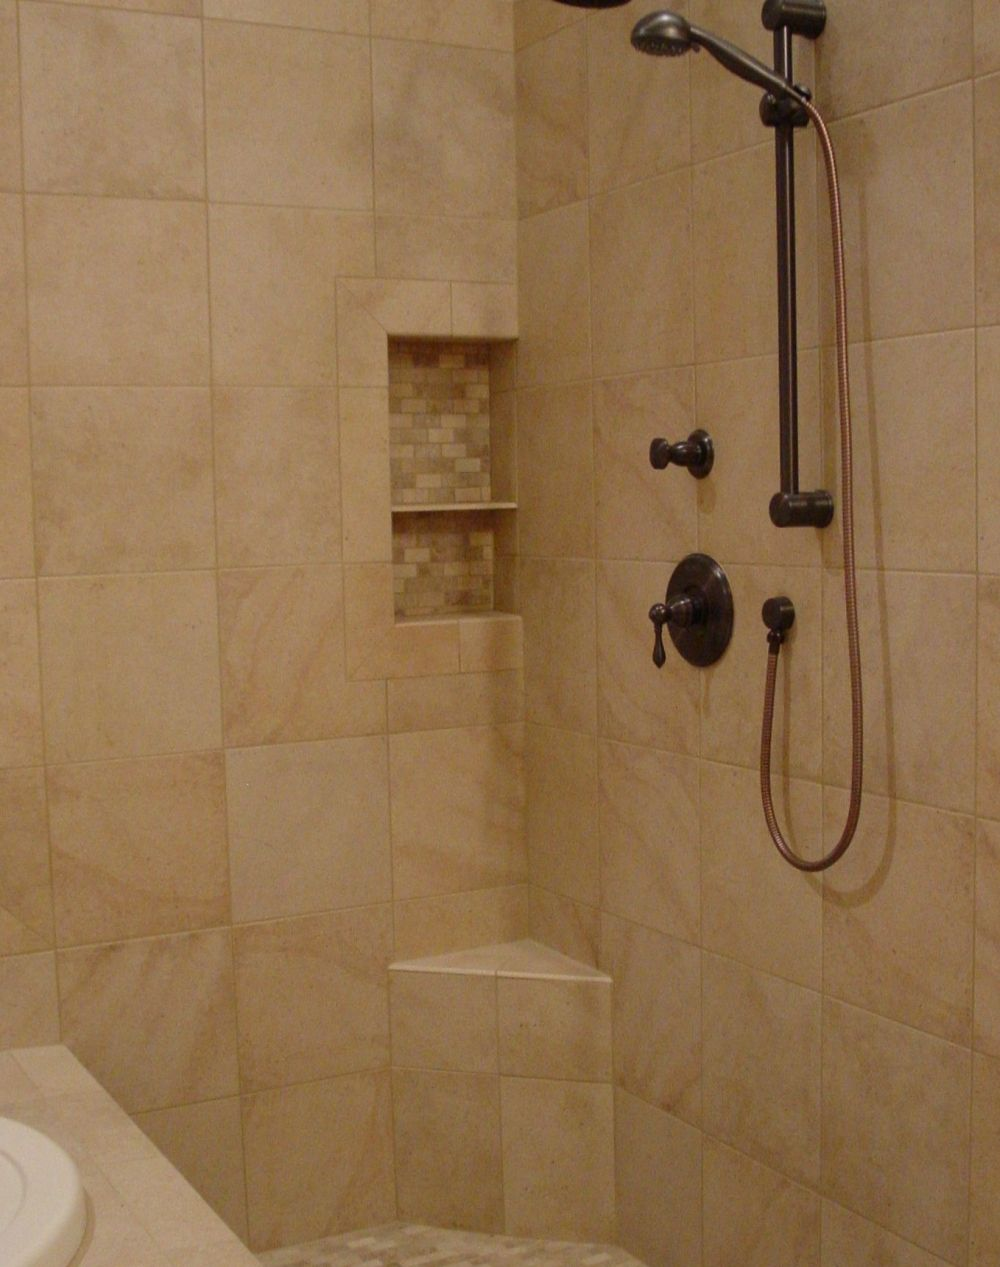 Shower Shelves For Tile Showers Shampoo And Soap Niches Recesses For Tile Showers Bathroom